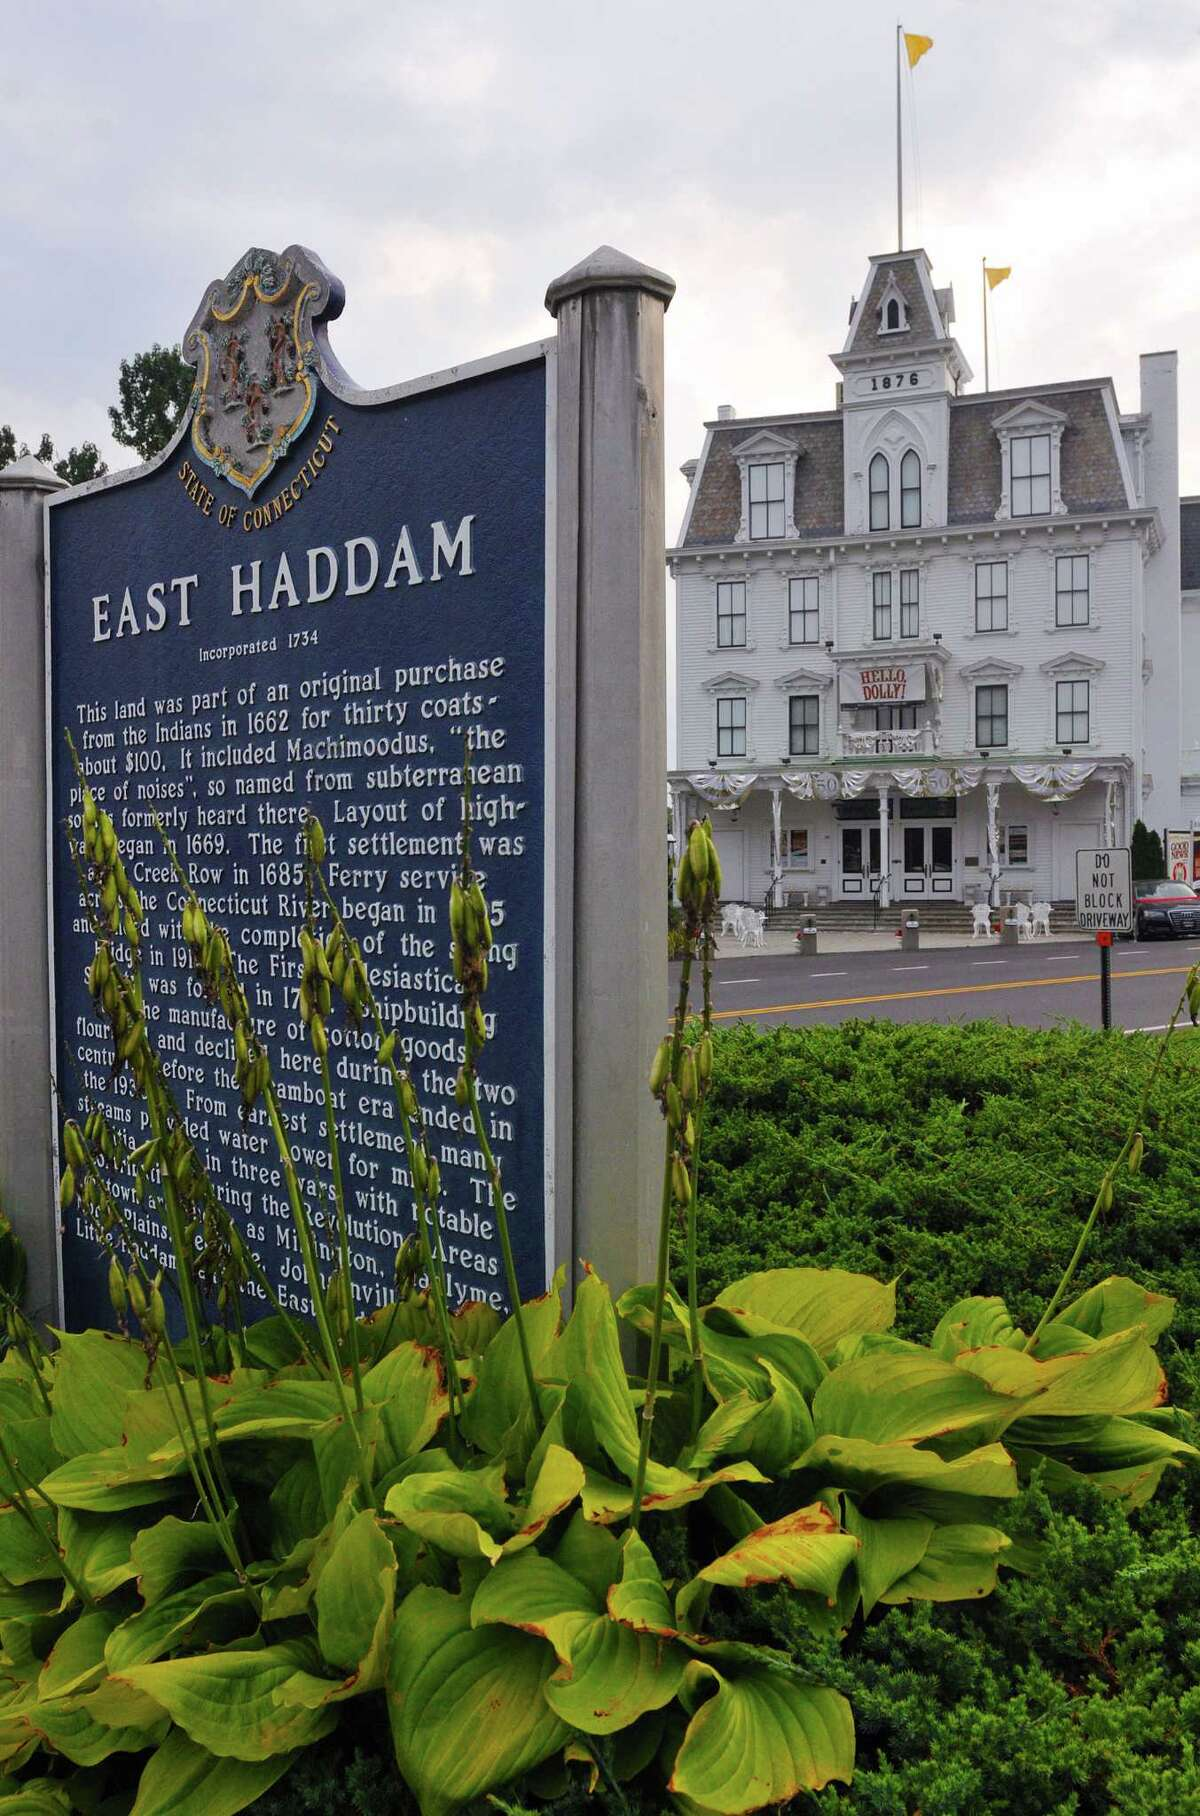 Goodspeed Opera House in East Haddam. Catherine Avalone - The Middletown Press